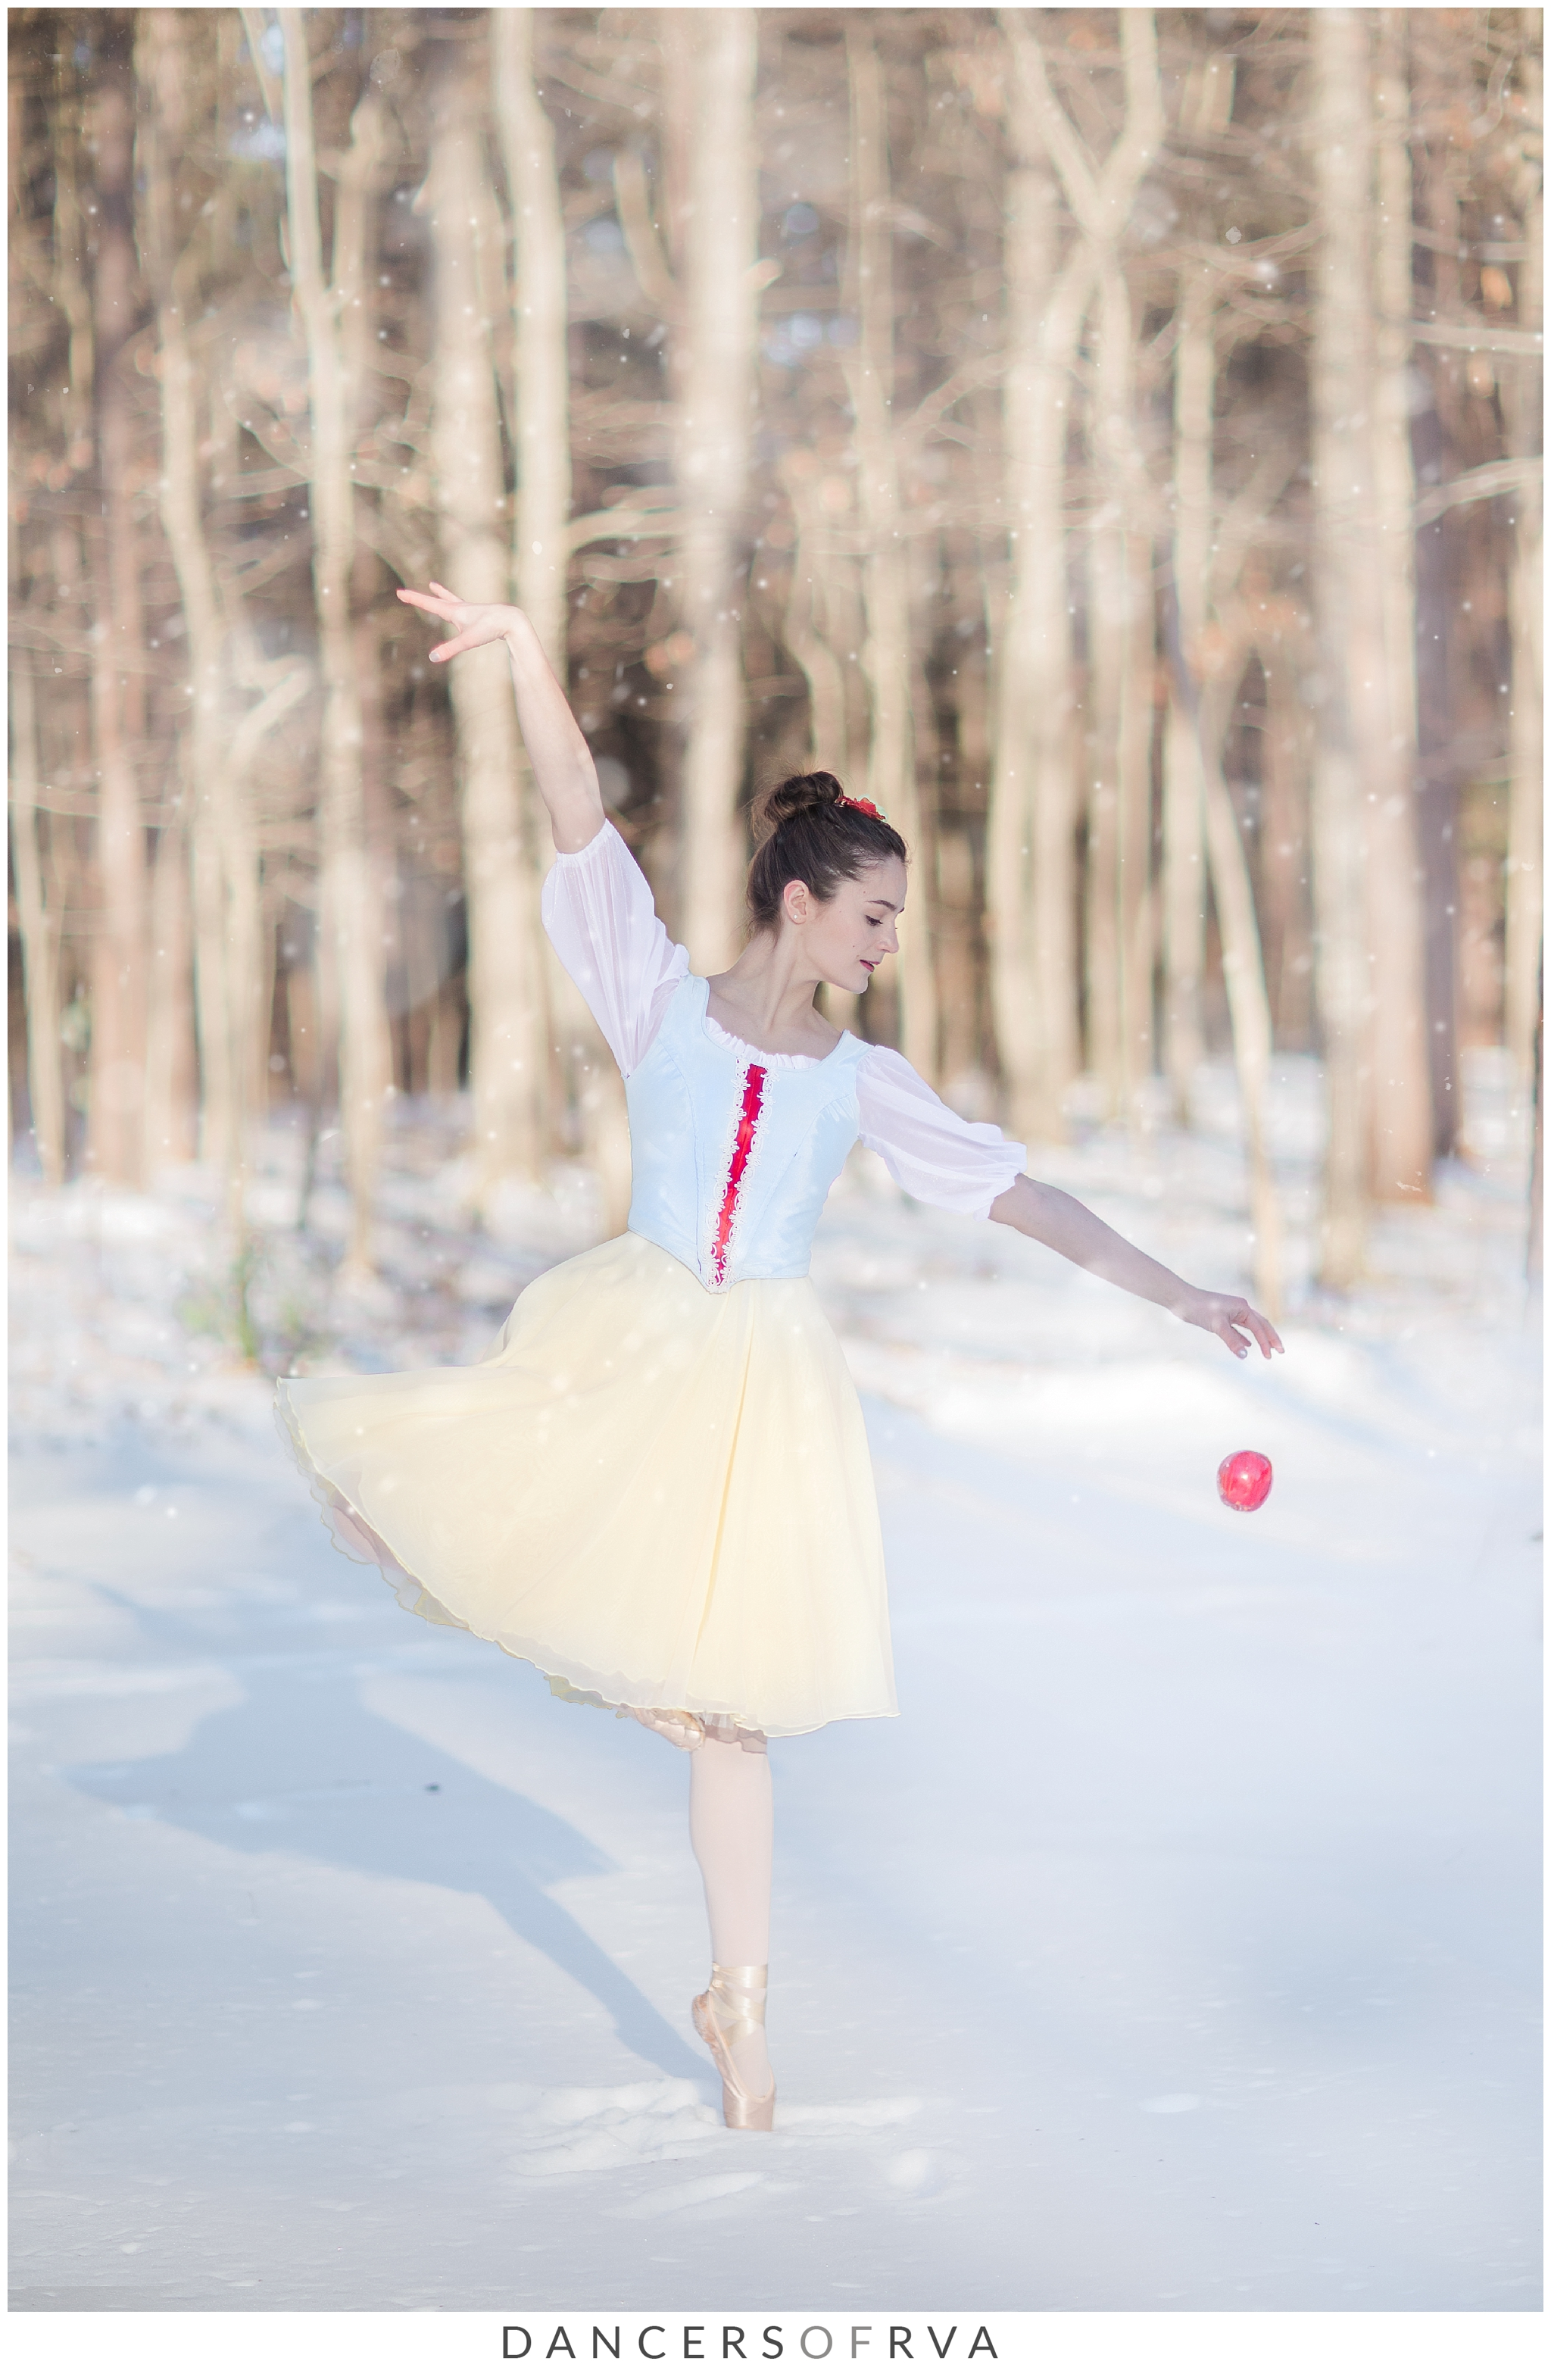 Richmond-Dance-Photography-Snow-White-Stanva-Modlin-Gianna-Grace-Photography_0004.jpg